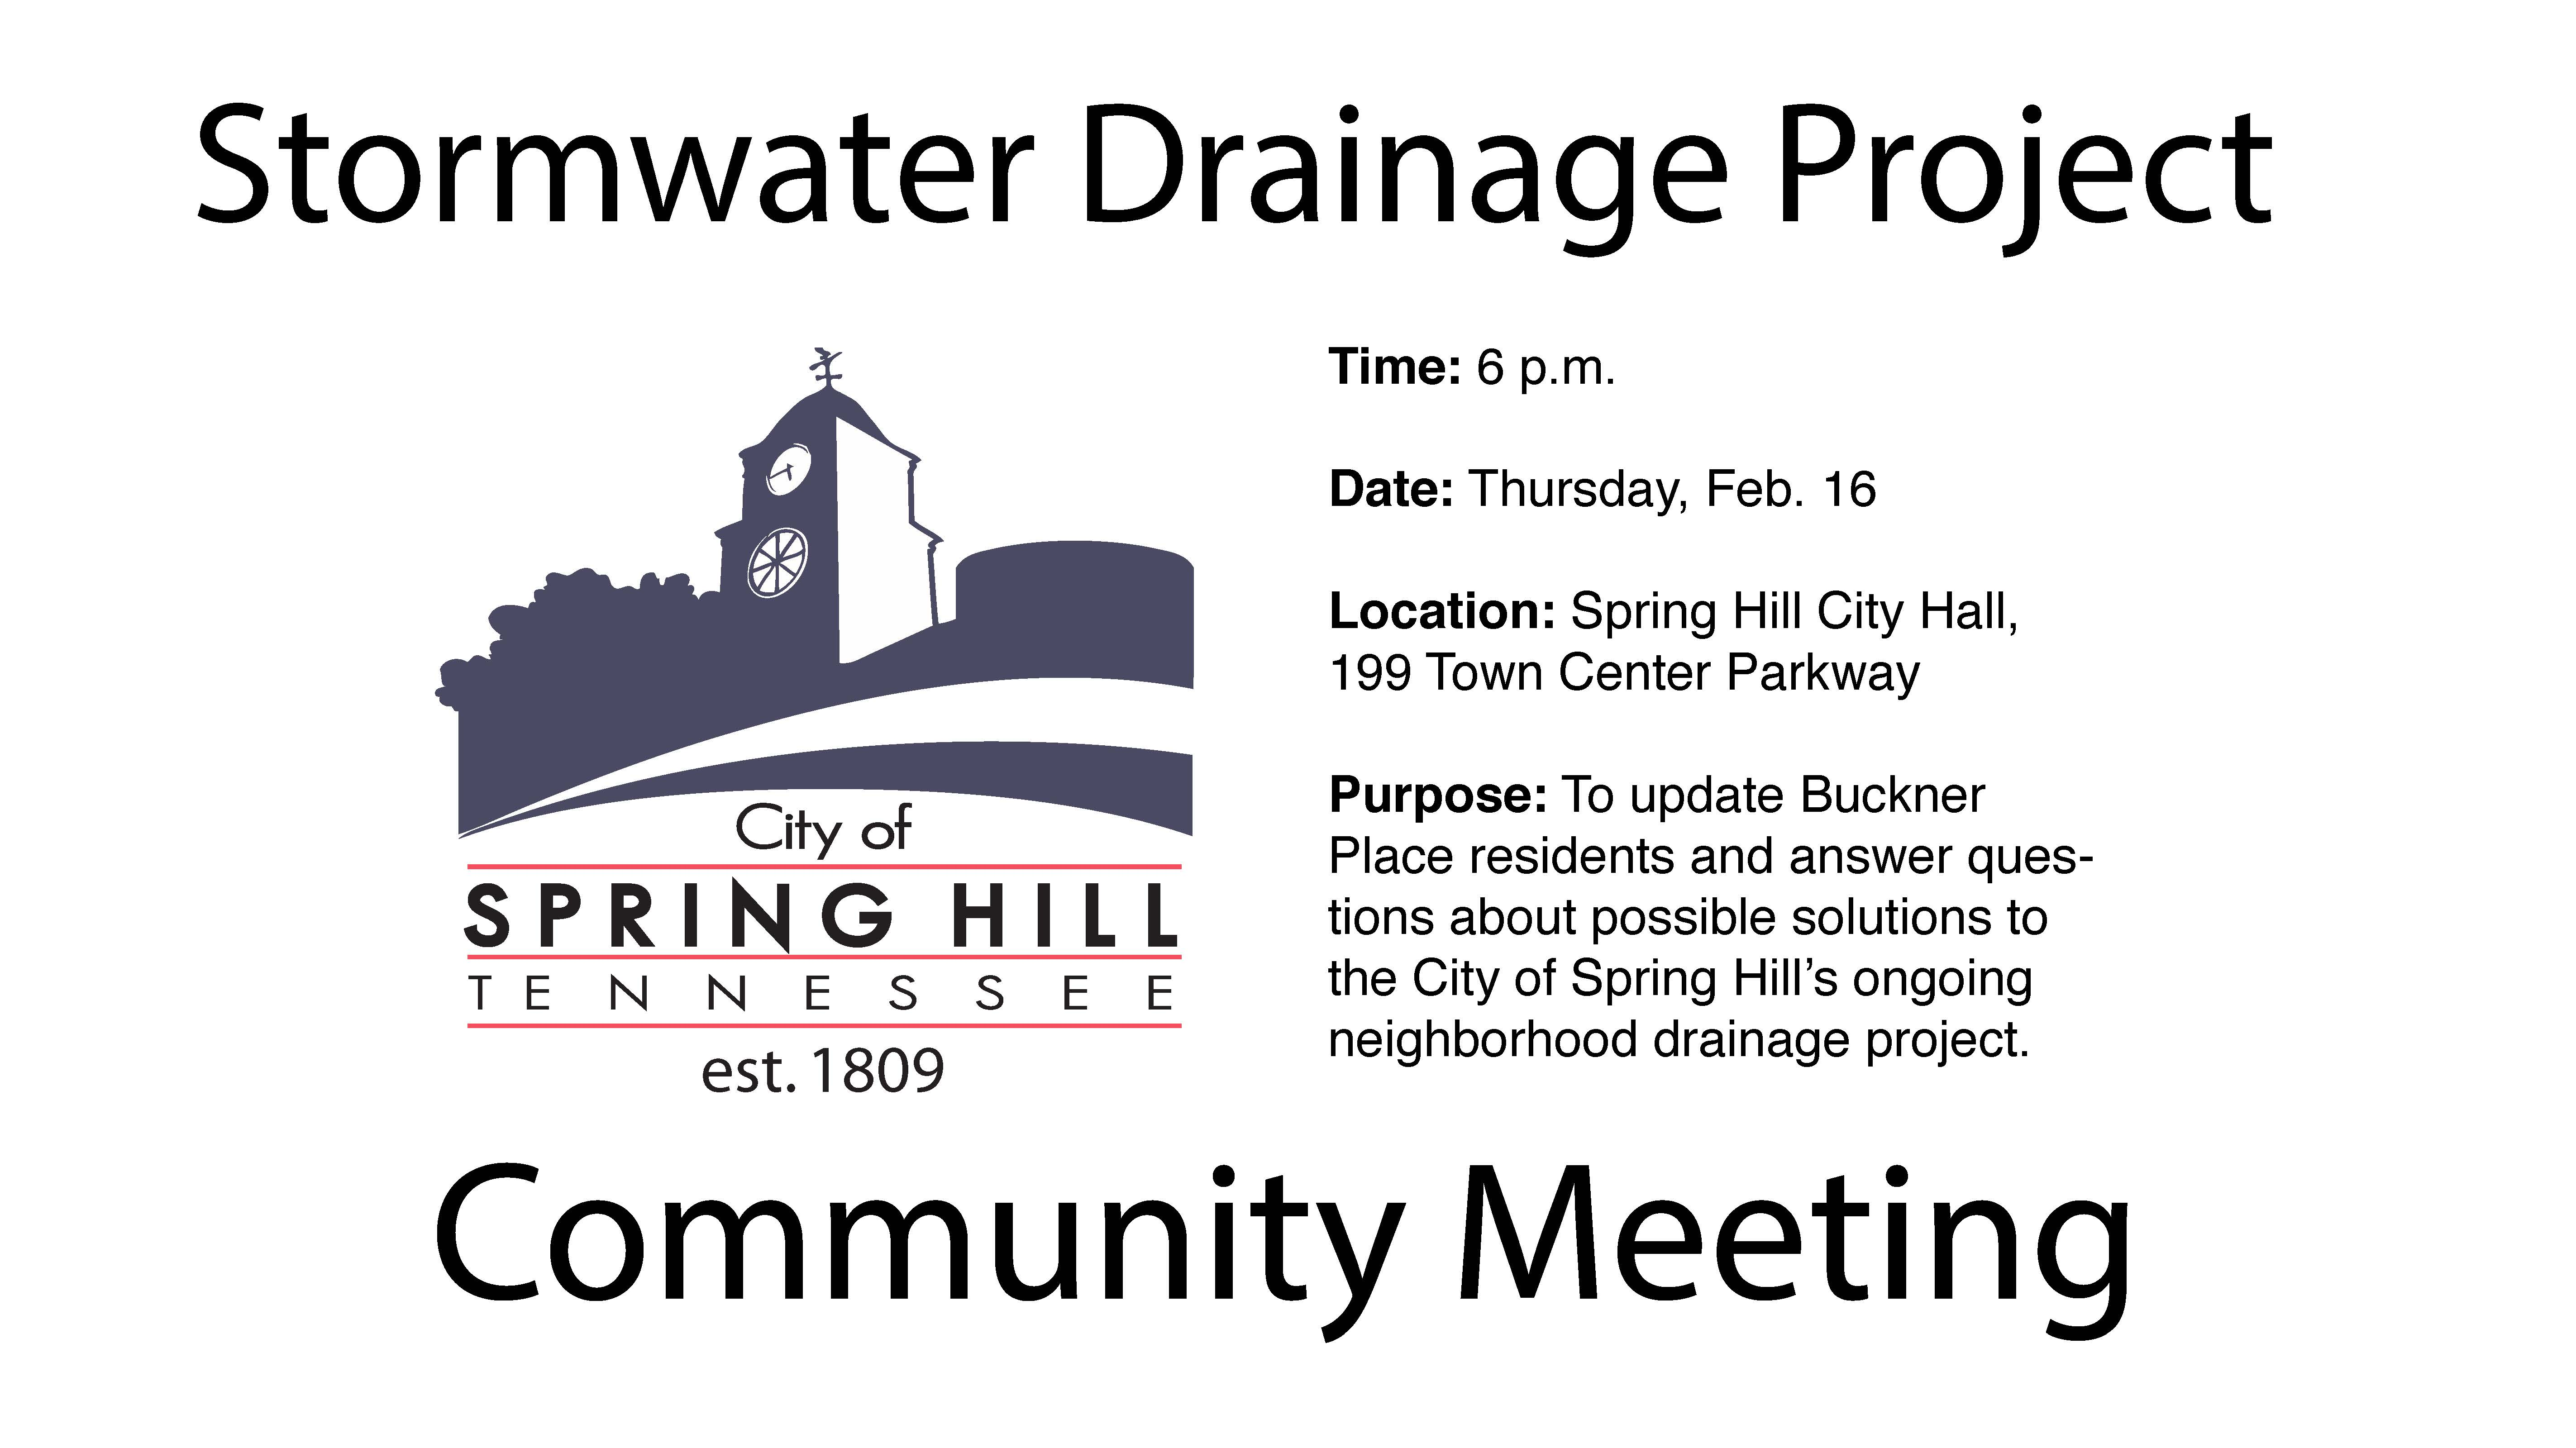 Buckner Place Community Meeting on stormwater drainage project solutions